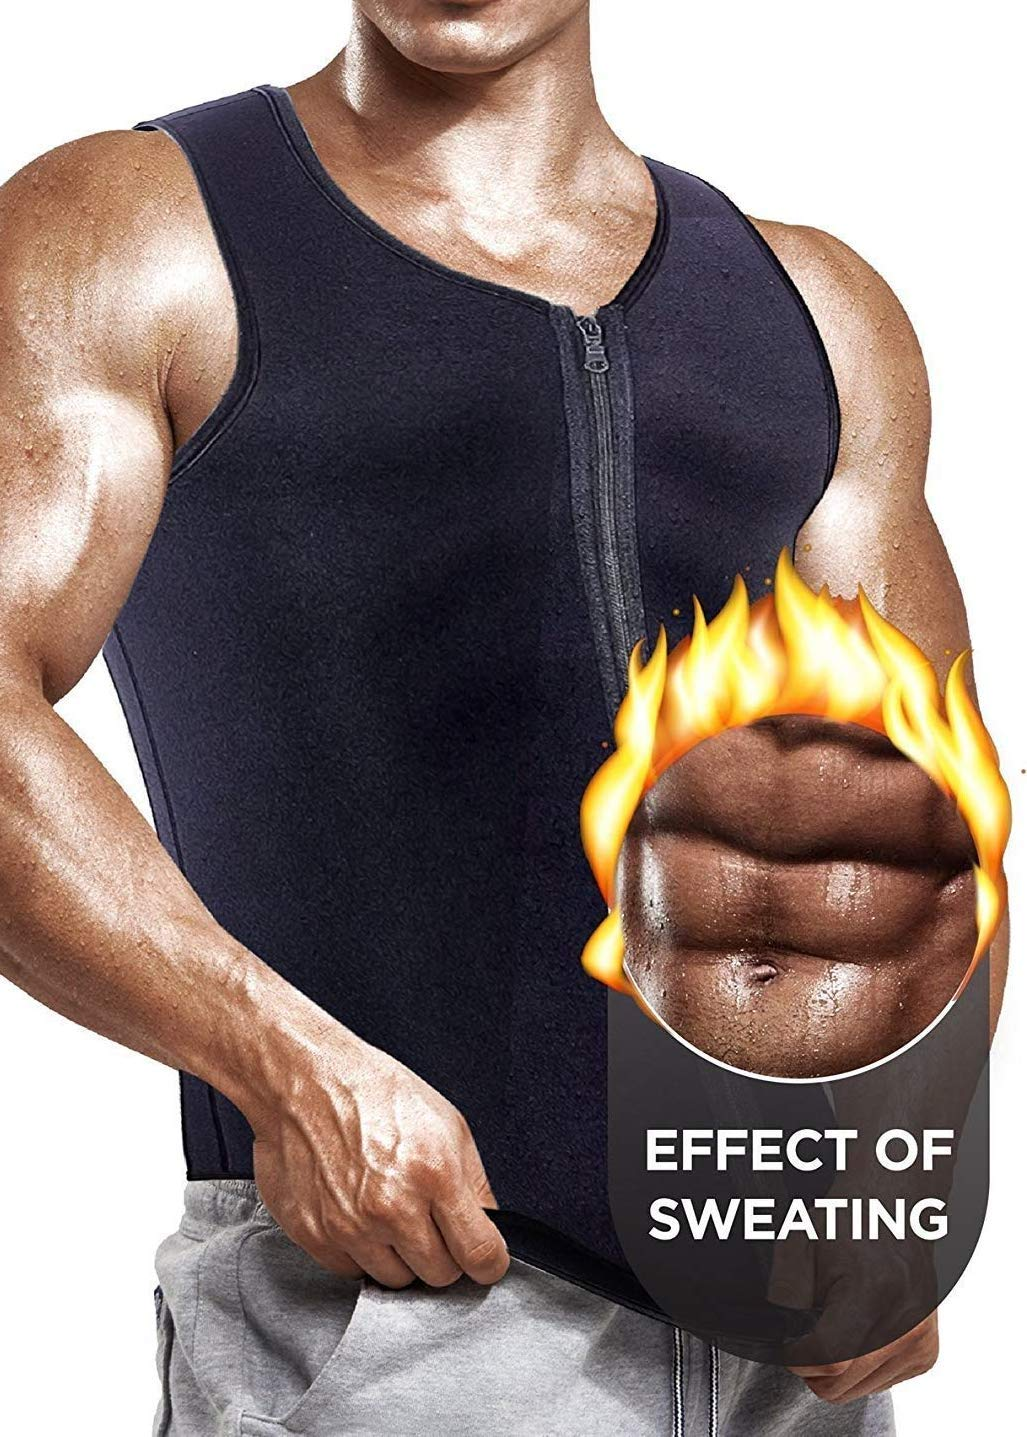 Self Pro Newest Effective Mens Waist Trainer Vest for Weightloss Hot Neoprene Corset Body Shaper Zipper Sauna